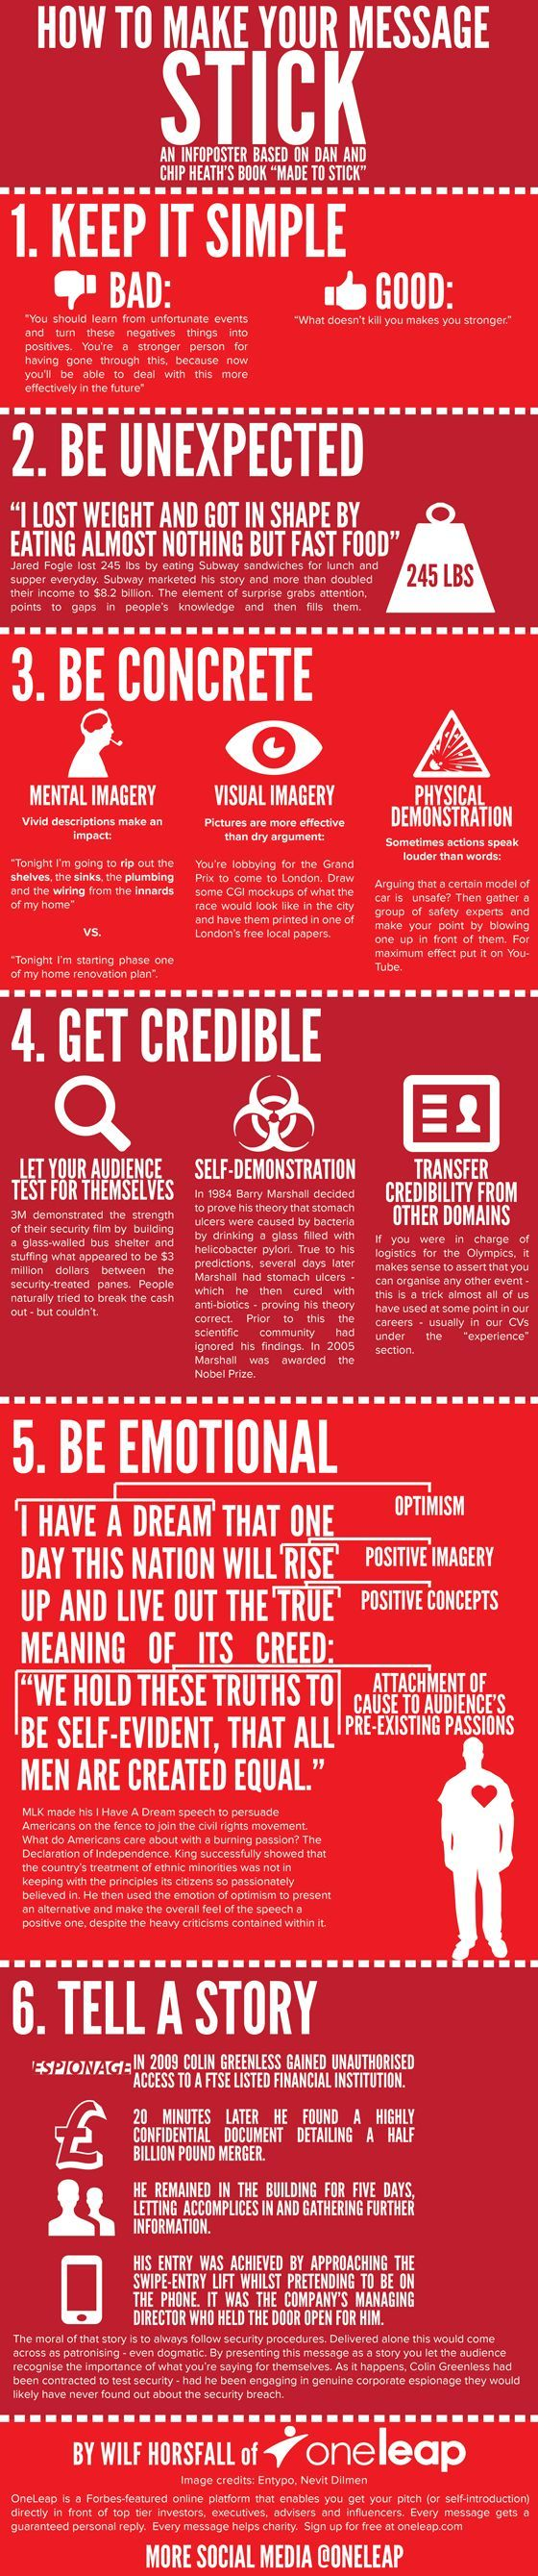 "7 ways to make an impression - infographic inspired by Chip & Dan Heath' ""Made to Stick"""